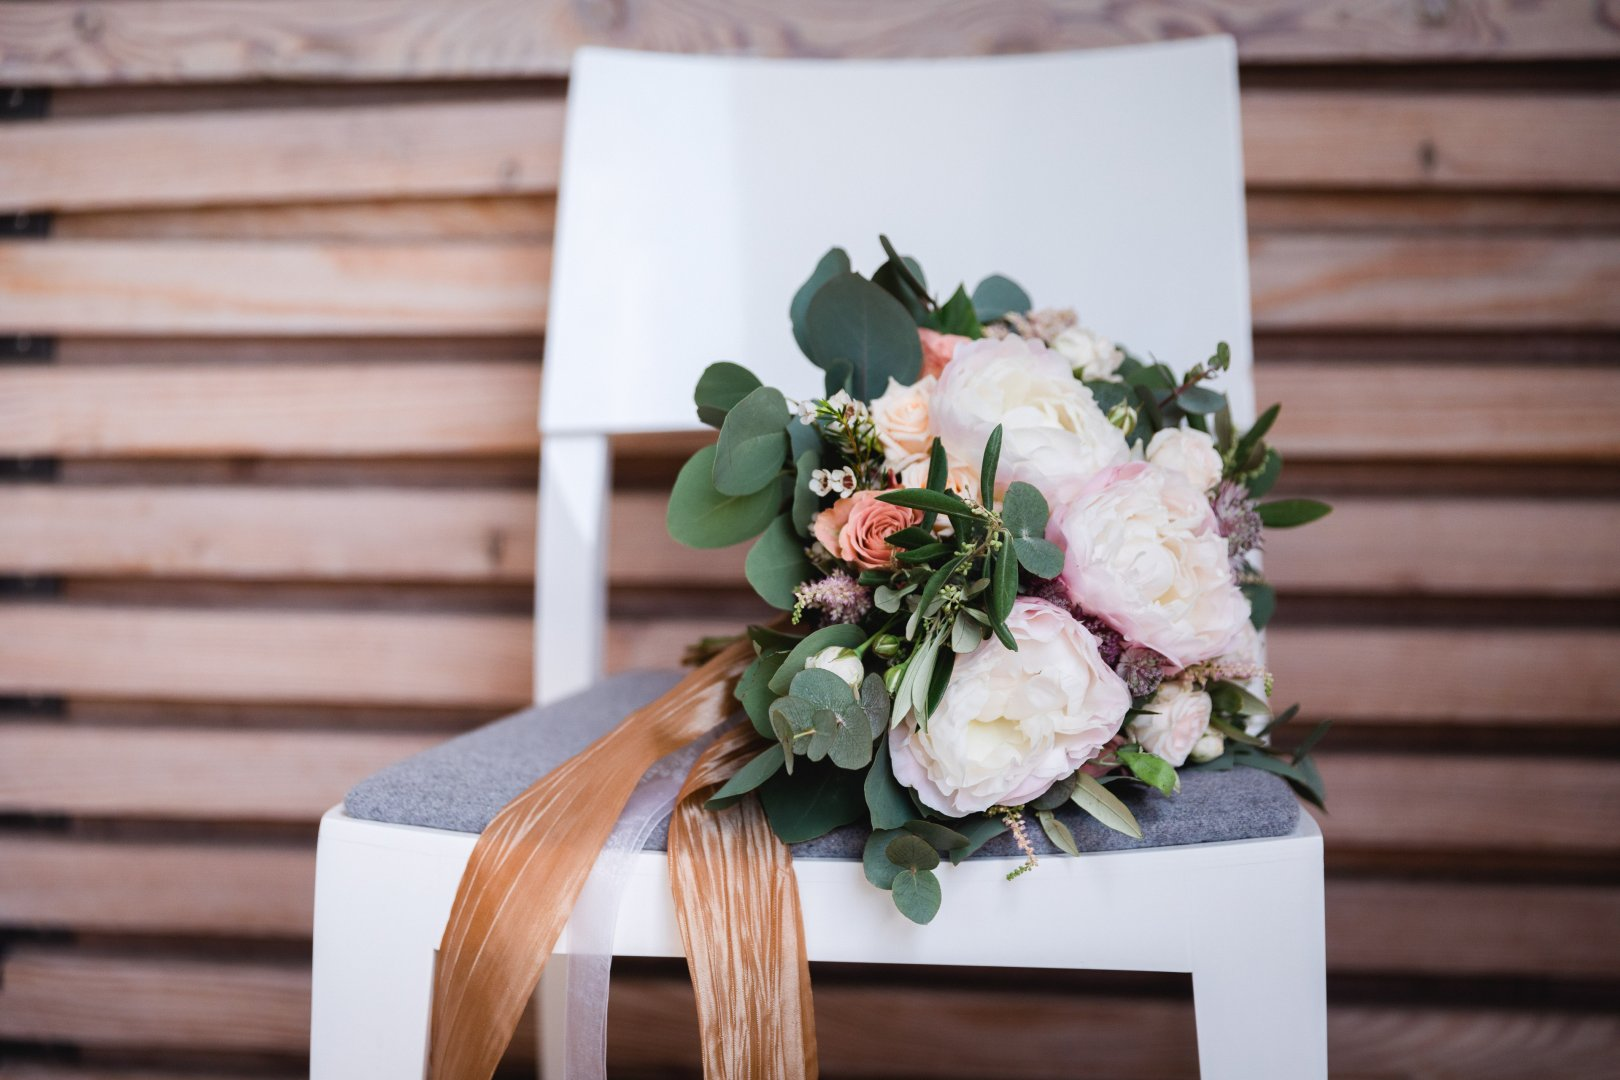 Photograph Flower Arranging Flower Floral design Floristry Bouquet Plant Cut flowers Garden roses Wedding ceremony supply Flowerpot Petal Wood Still life photography Table Artificial flower Peony Rose family Rose Twig Furniture Hydrangea